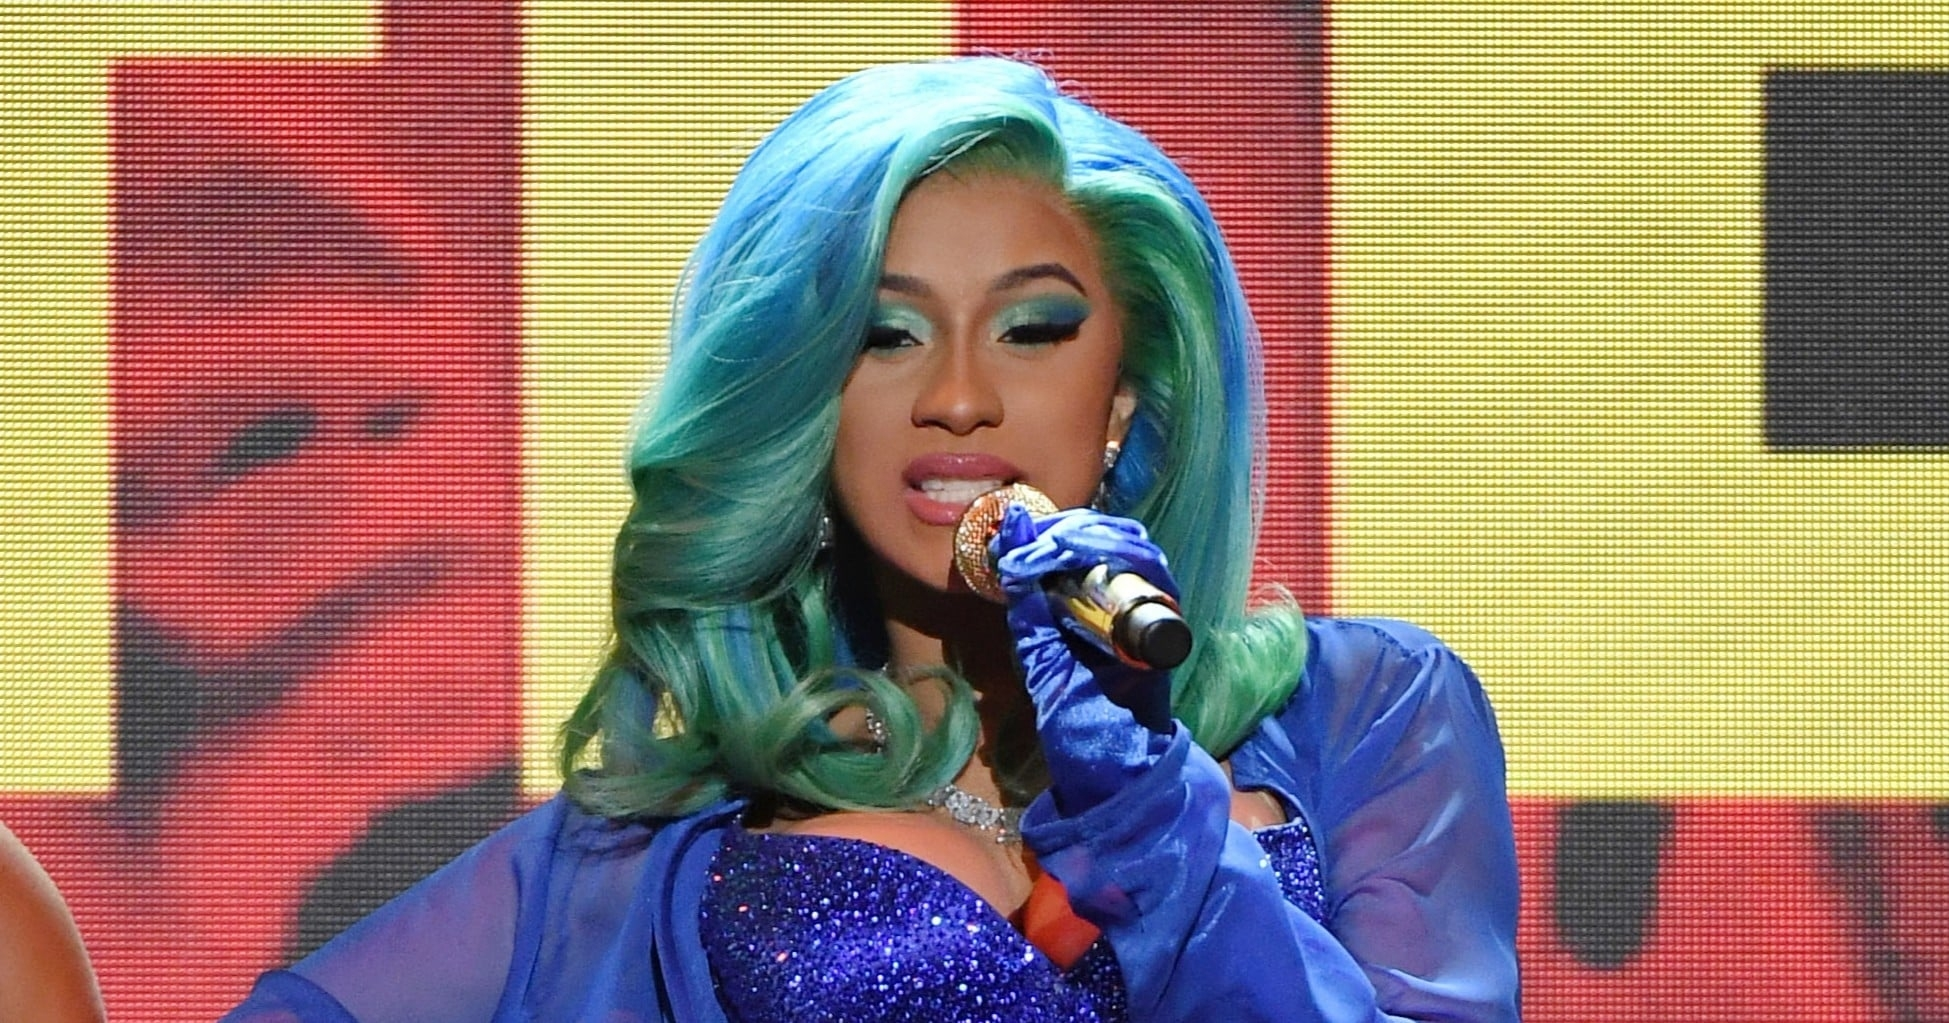 Cardi B Quotes About 2019 Super Bowl Performance   Popsugar intended for Cardi B Super Bowl 2019